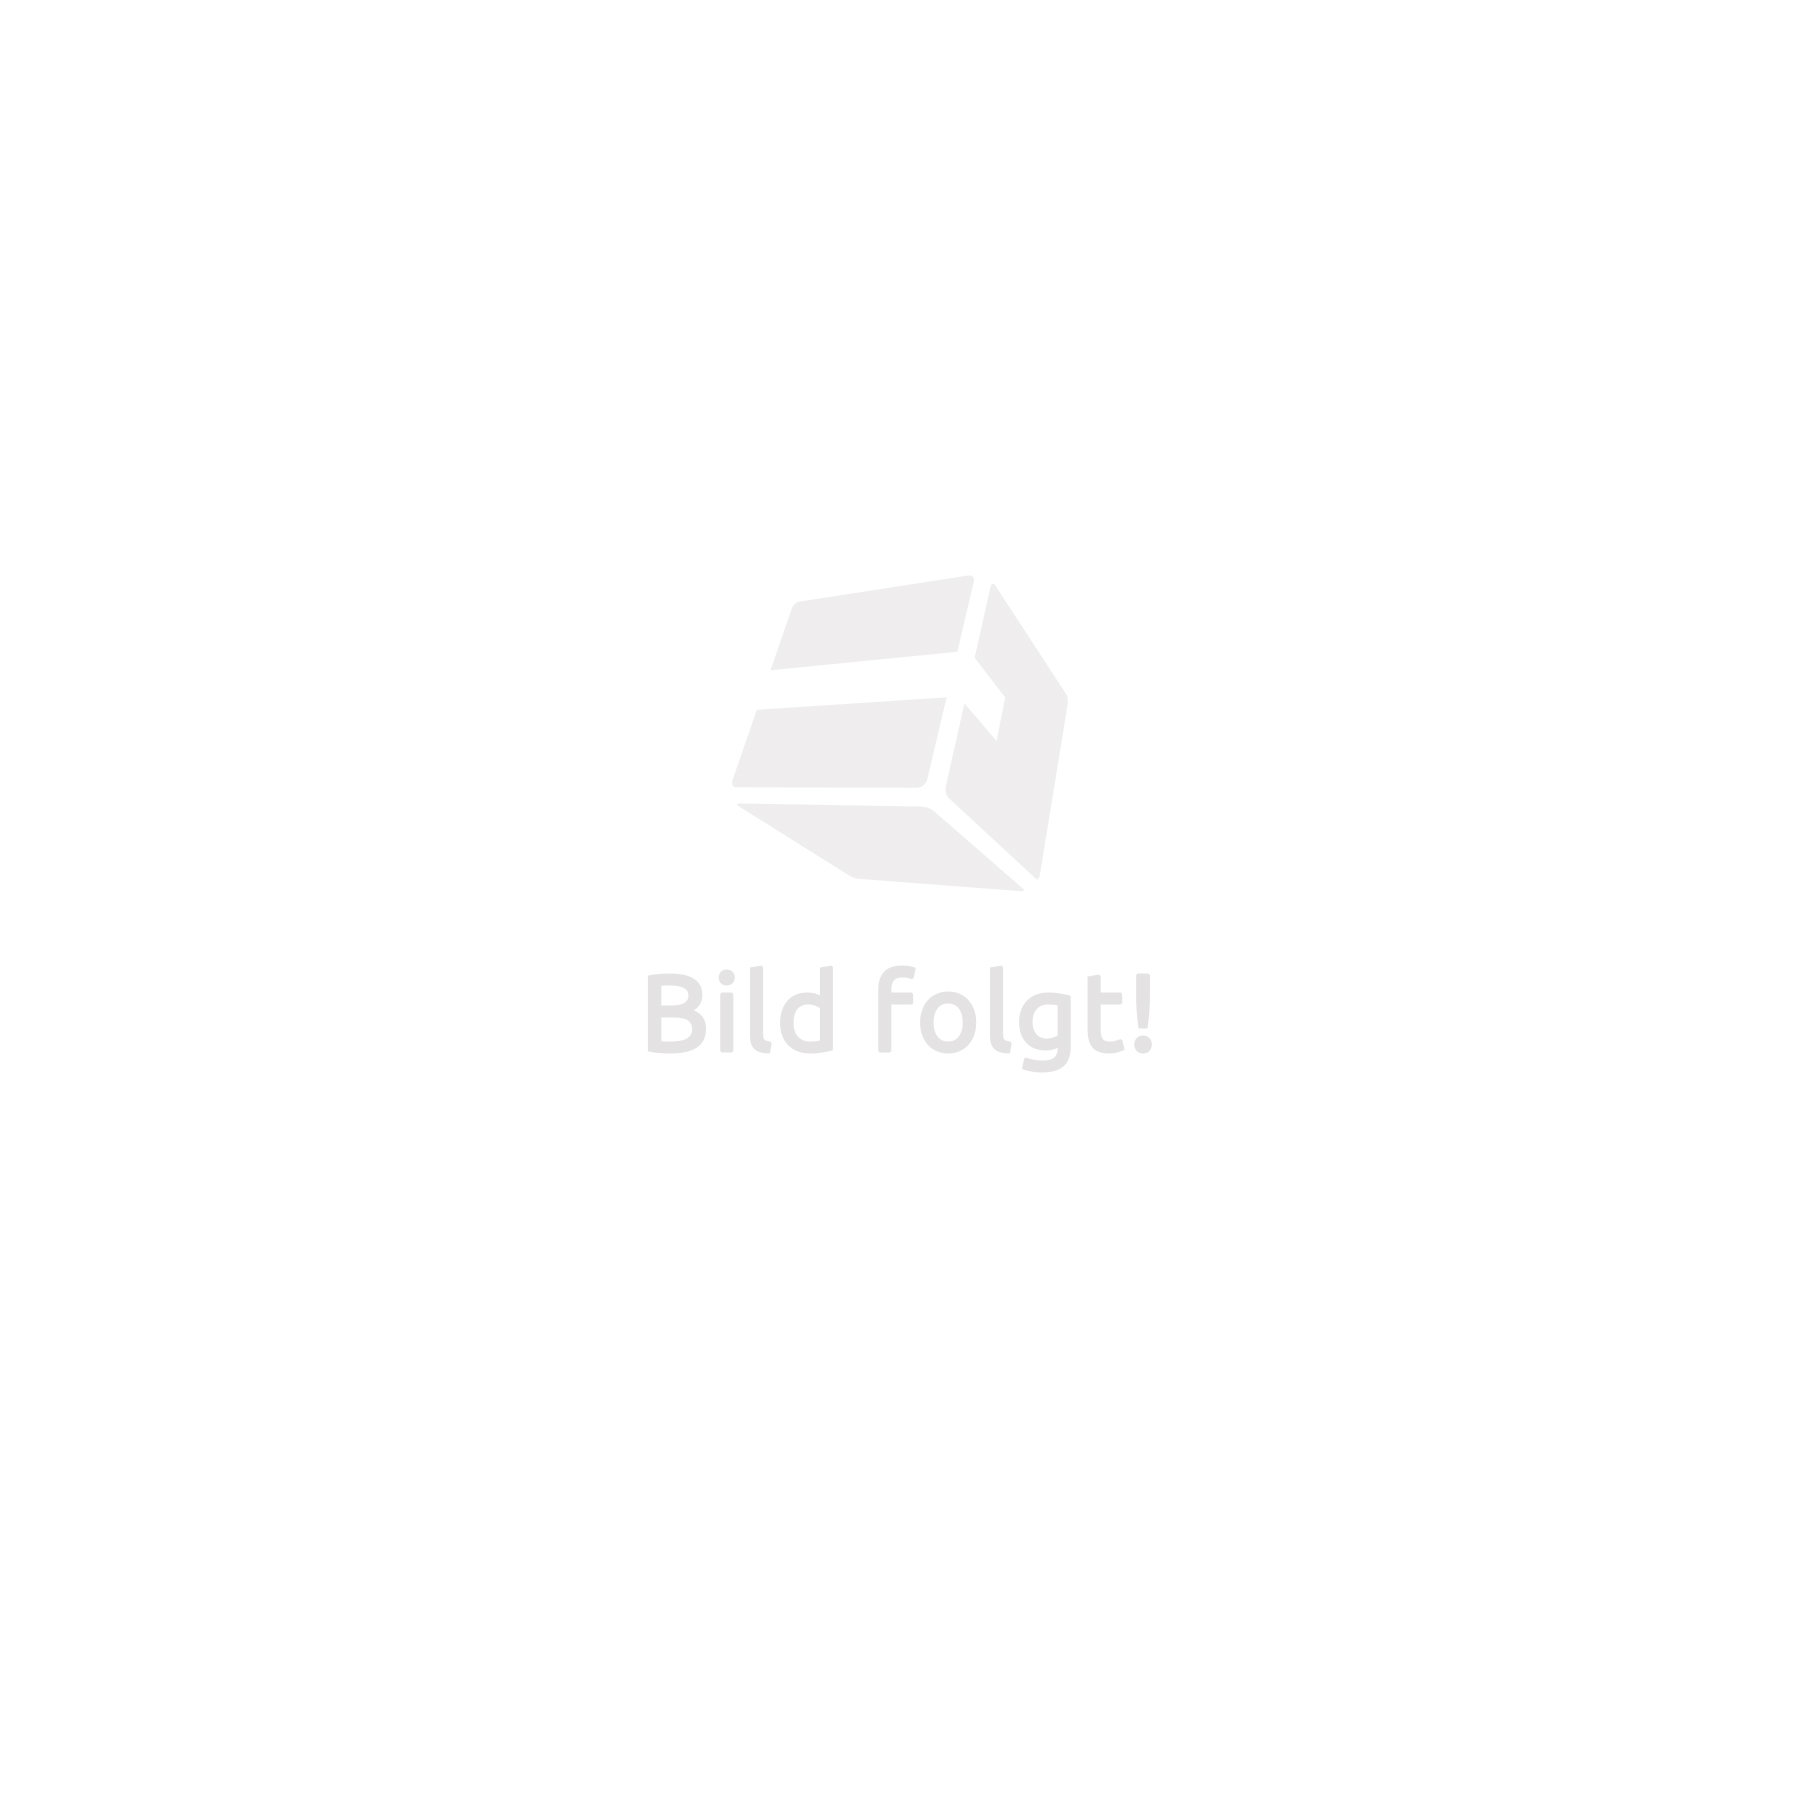 Kids' punching bag set